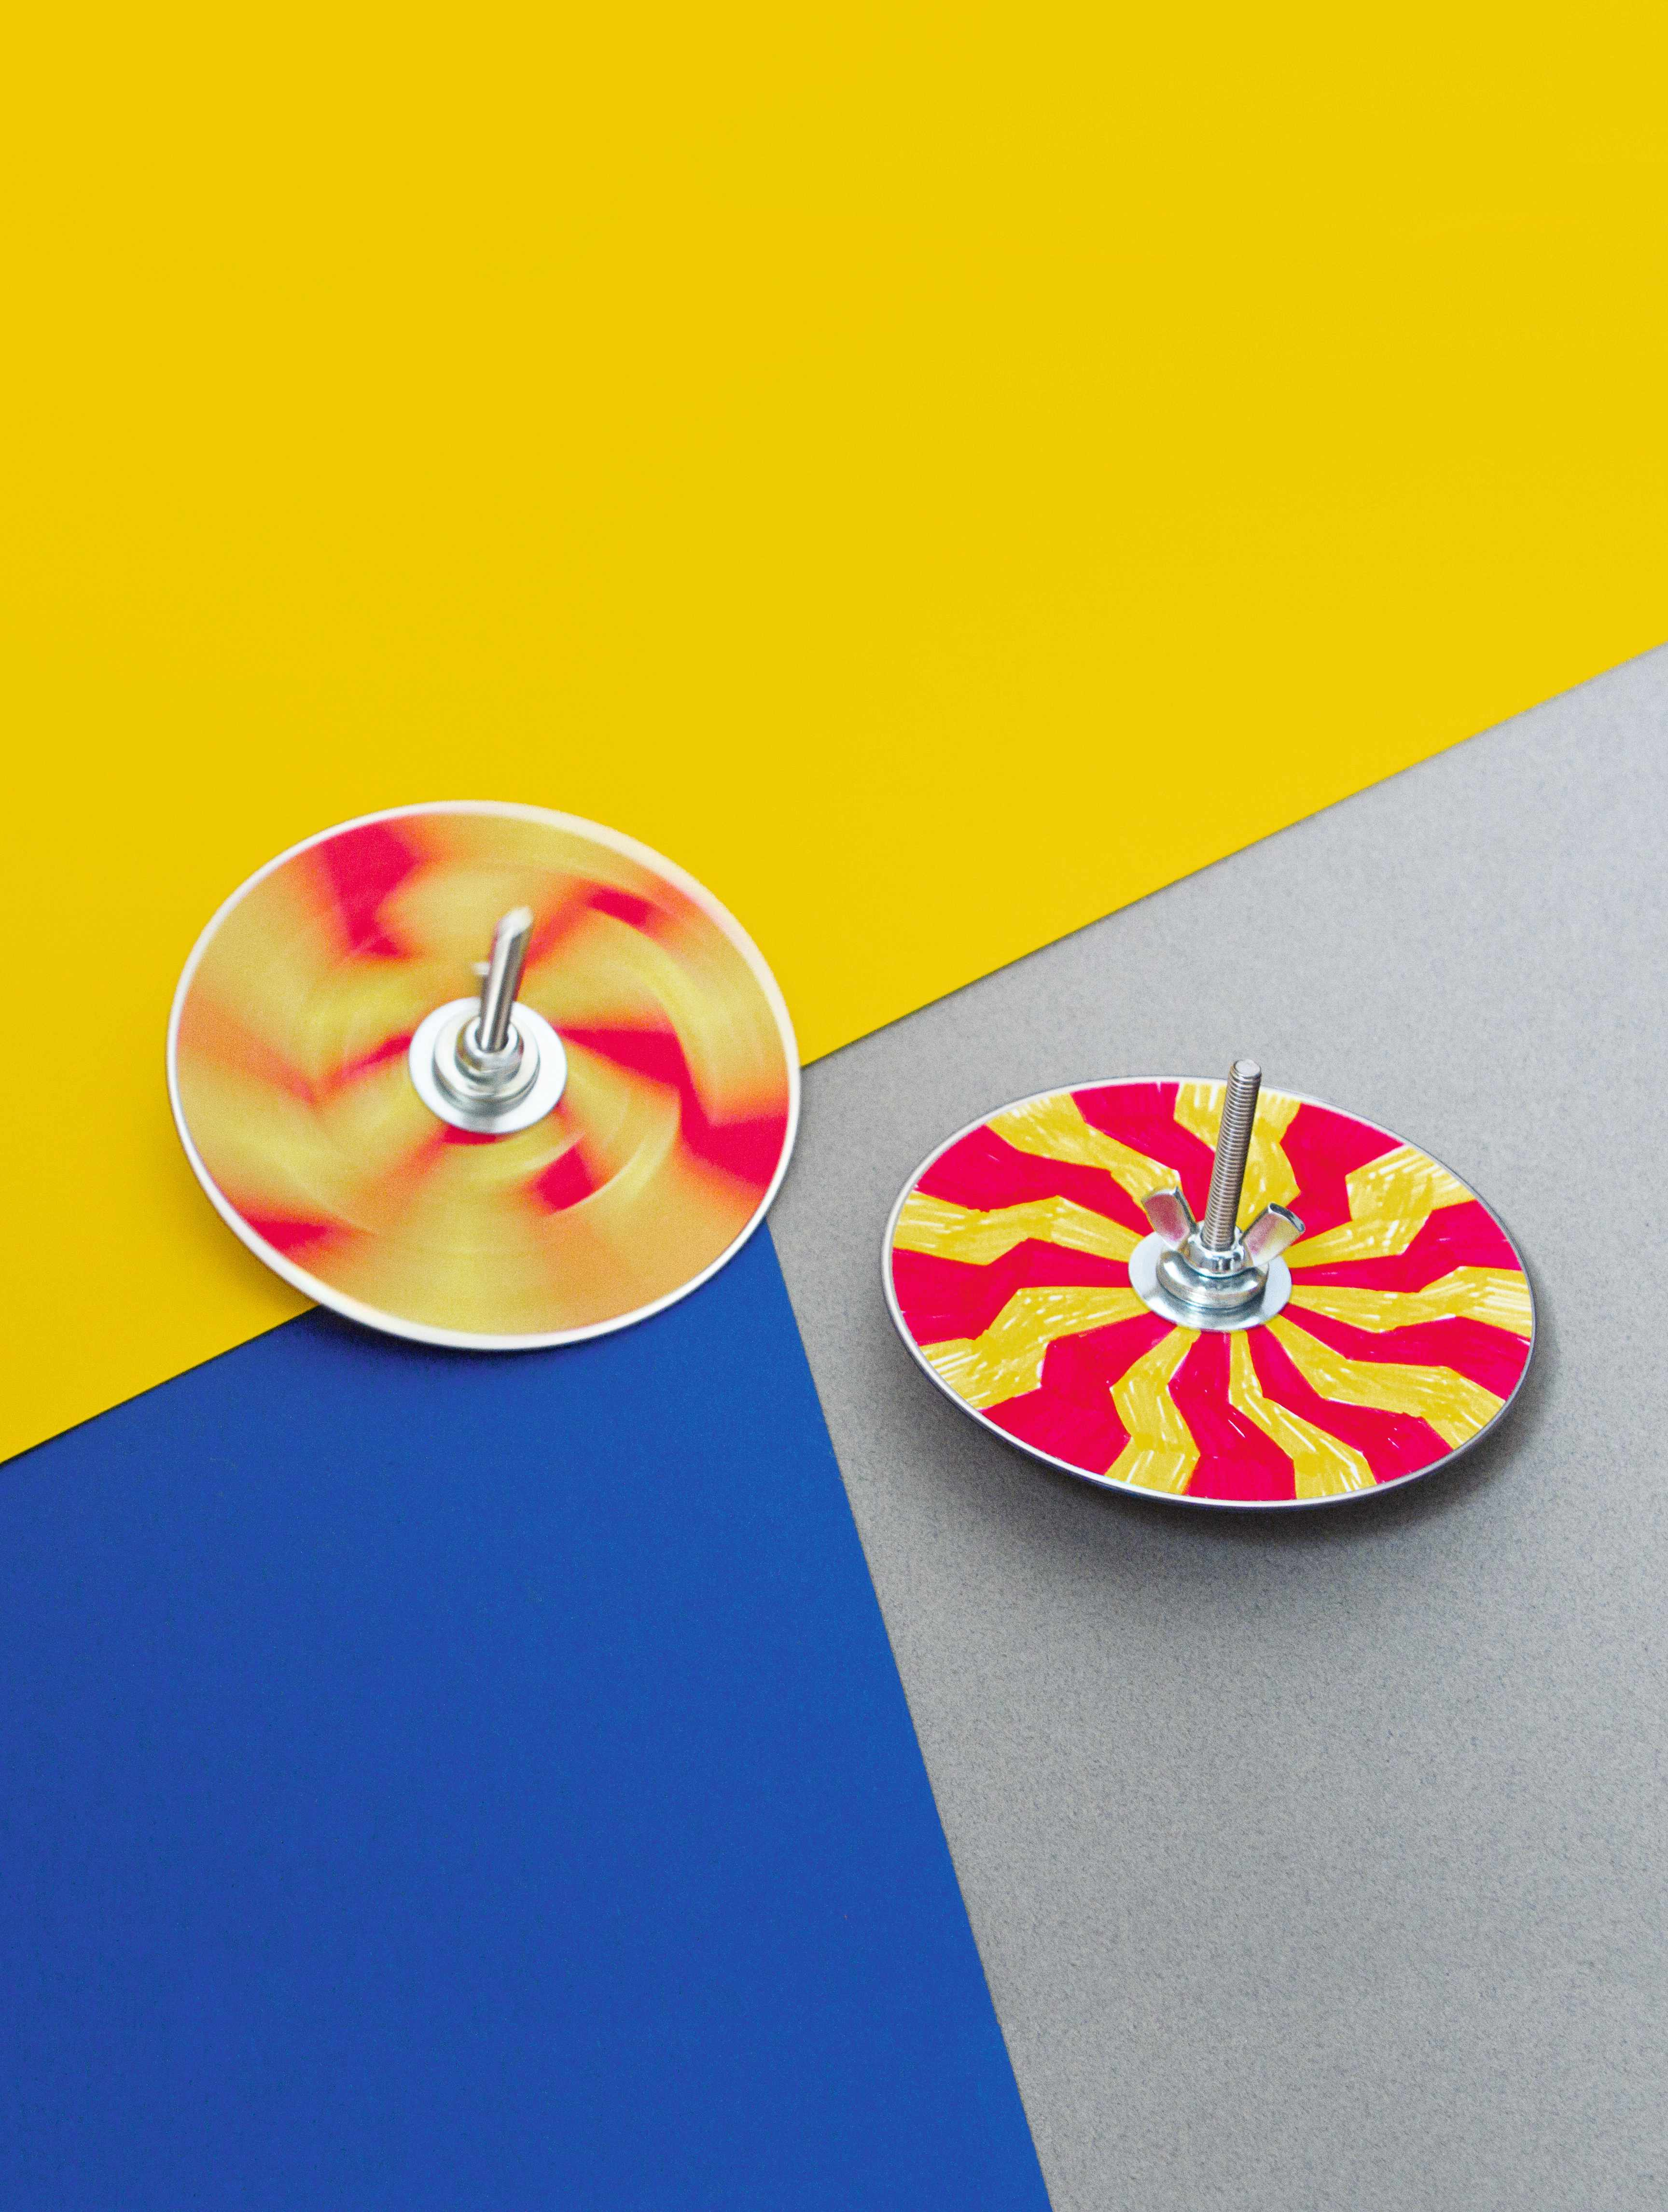 Now Make This: Craft project CD Spinner